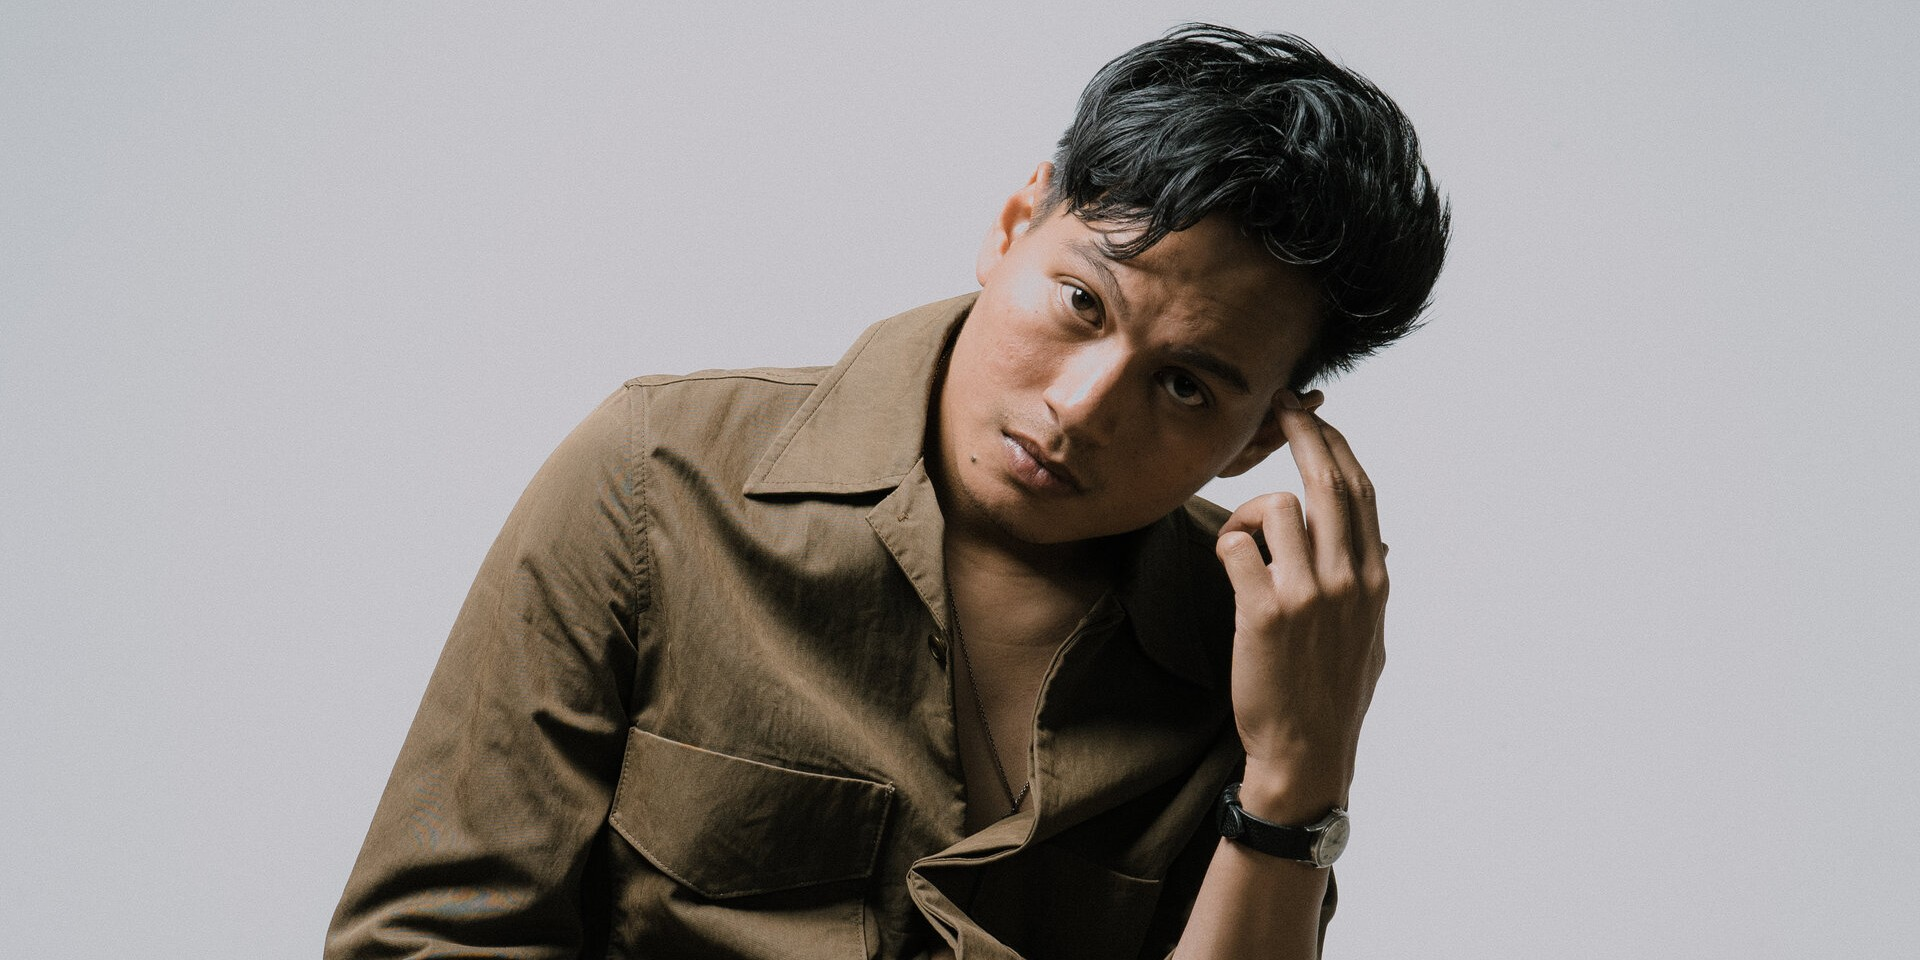 Asia Spotlight: Rendy Pandugo on his artistic evolution, creative process, and the story behind his latest EP 'SEE YOU SOMEDAY'